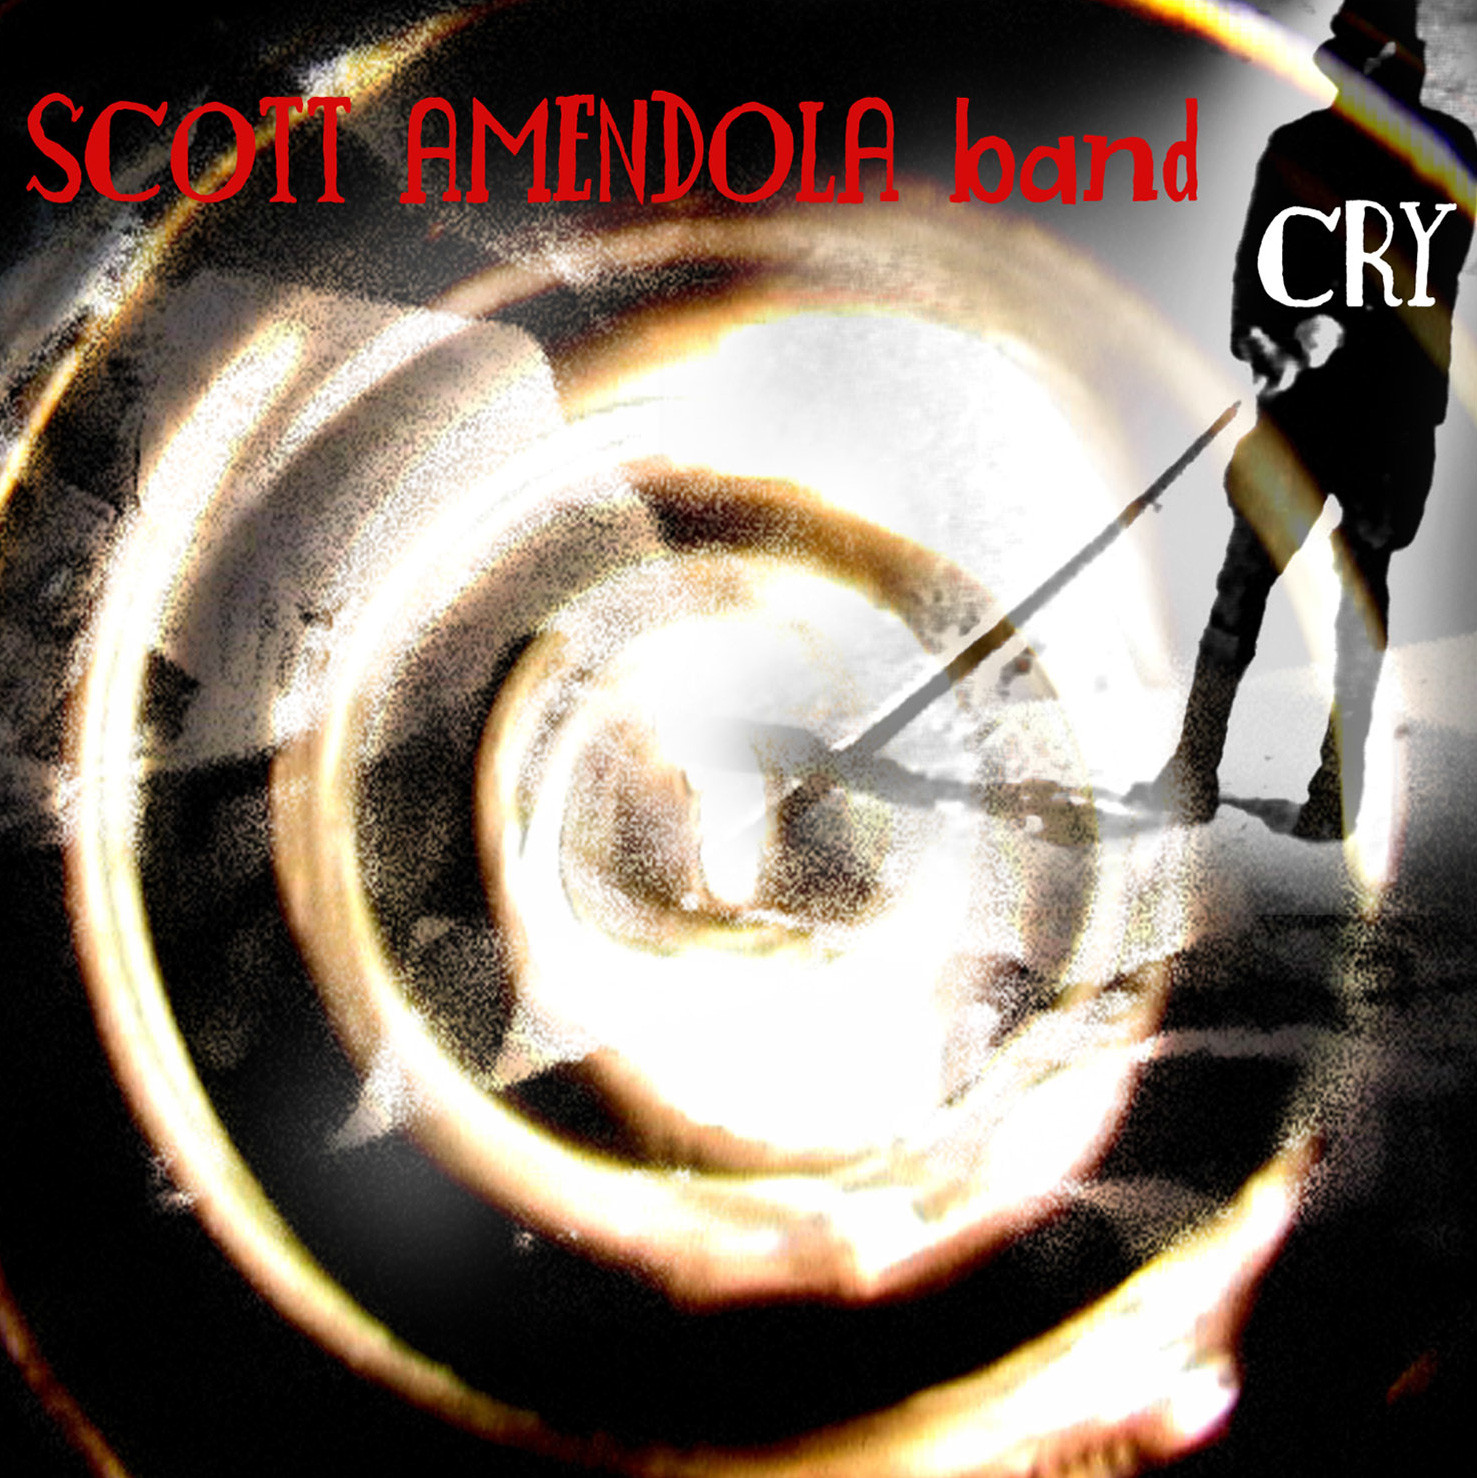 Scott Amendola Band – Cry